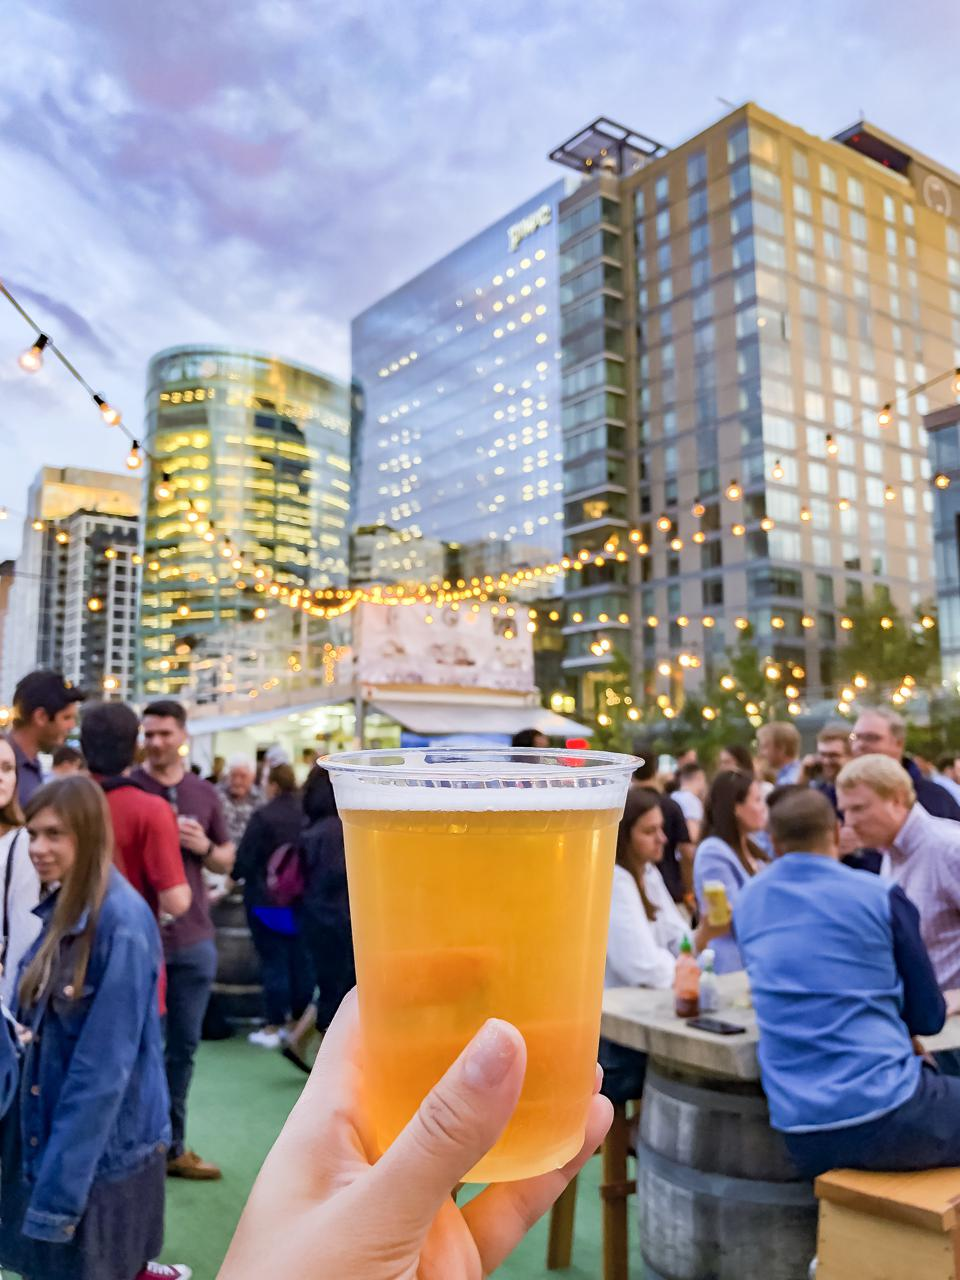 BOSTON, MA - Cisco Brewers Seaport Beer Garden